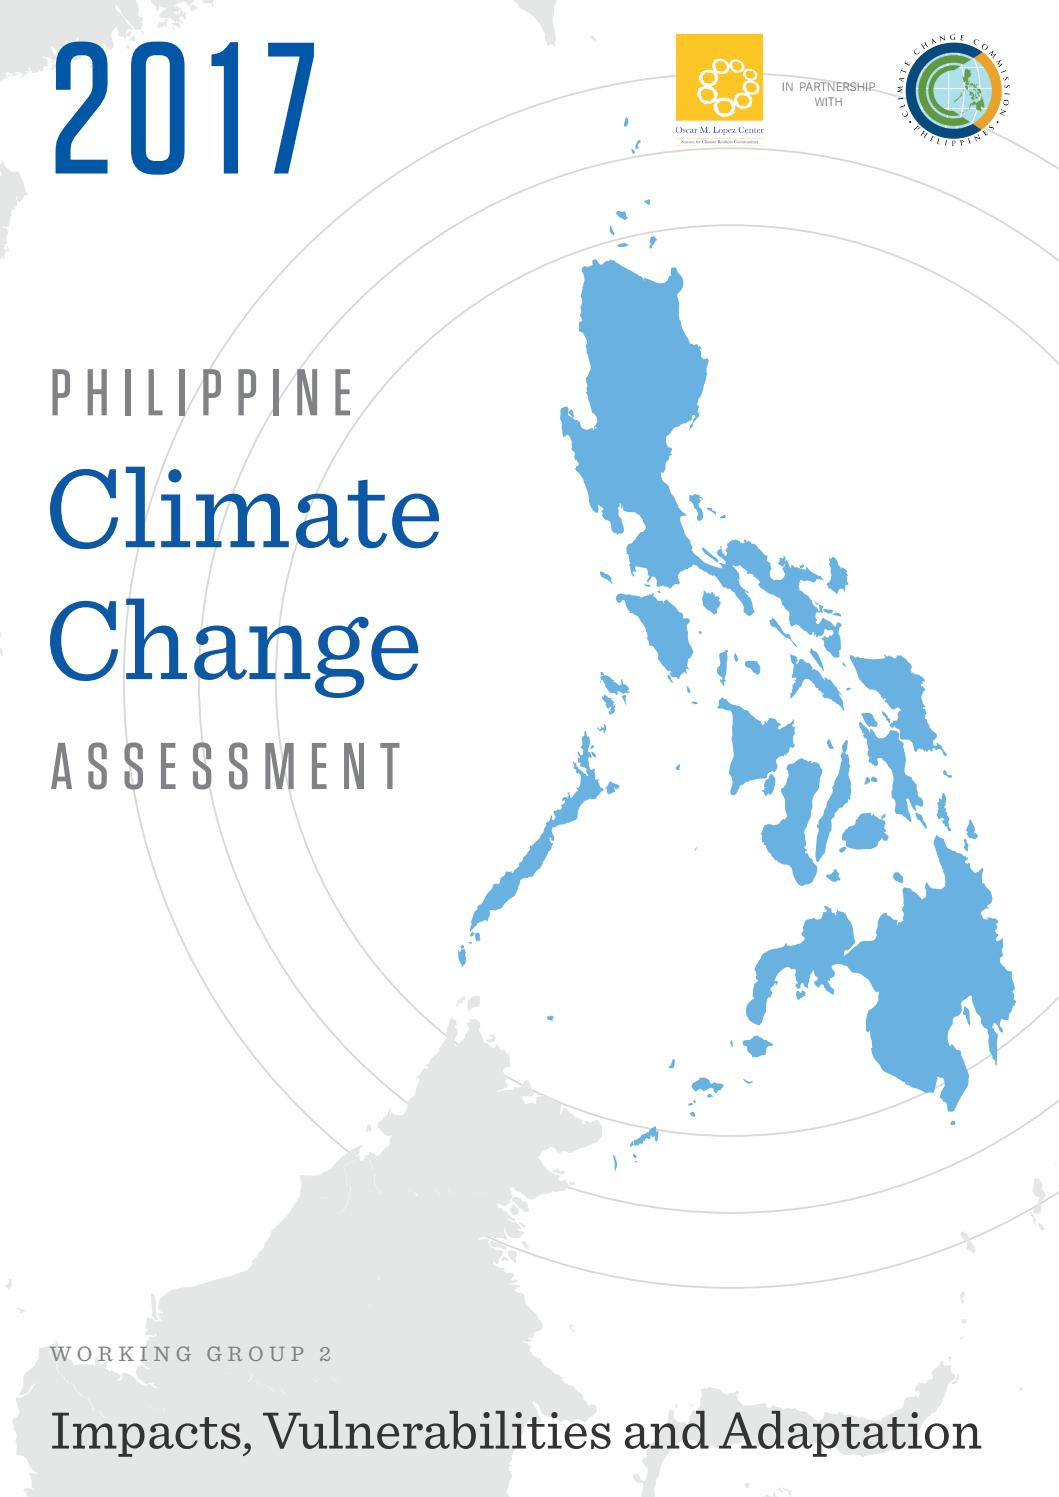 2017 Philippine Climate Change Assessment by Jan-Daniel